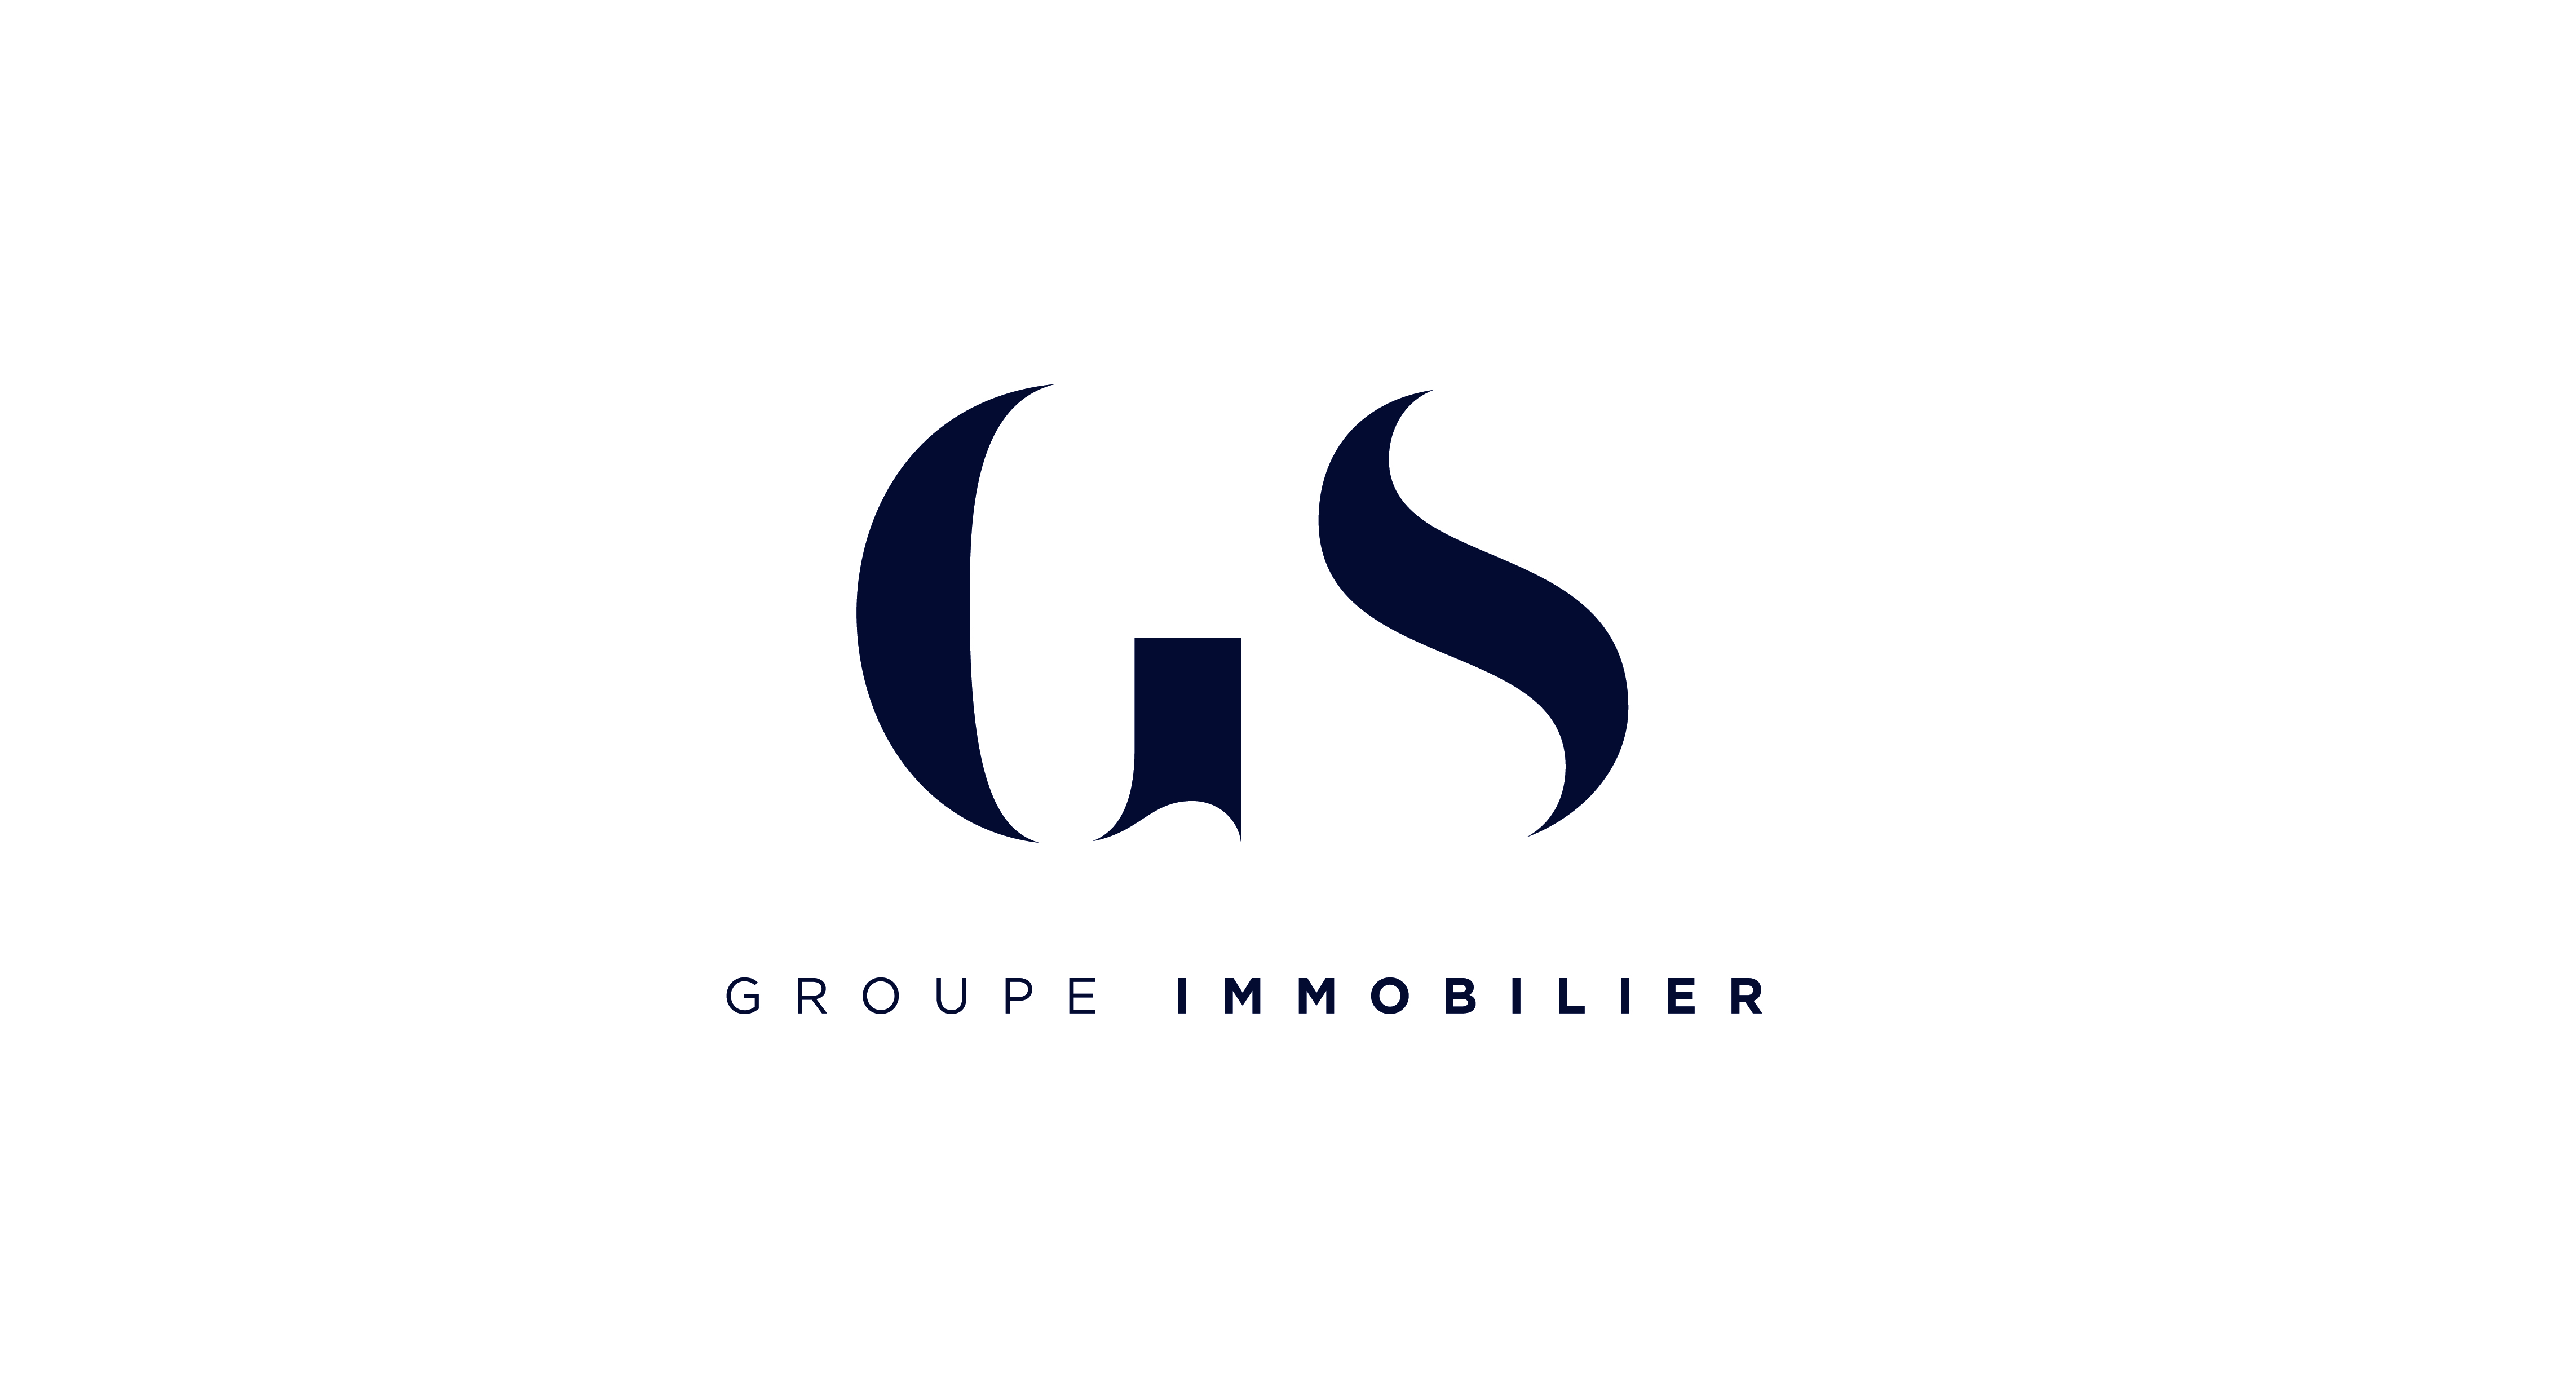 GS GROUPE IMMOBILIER